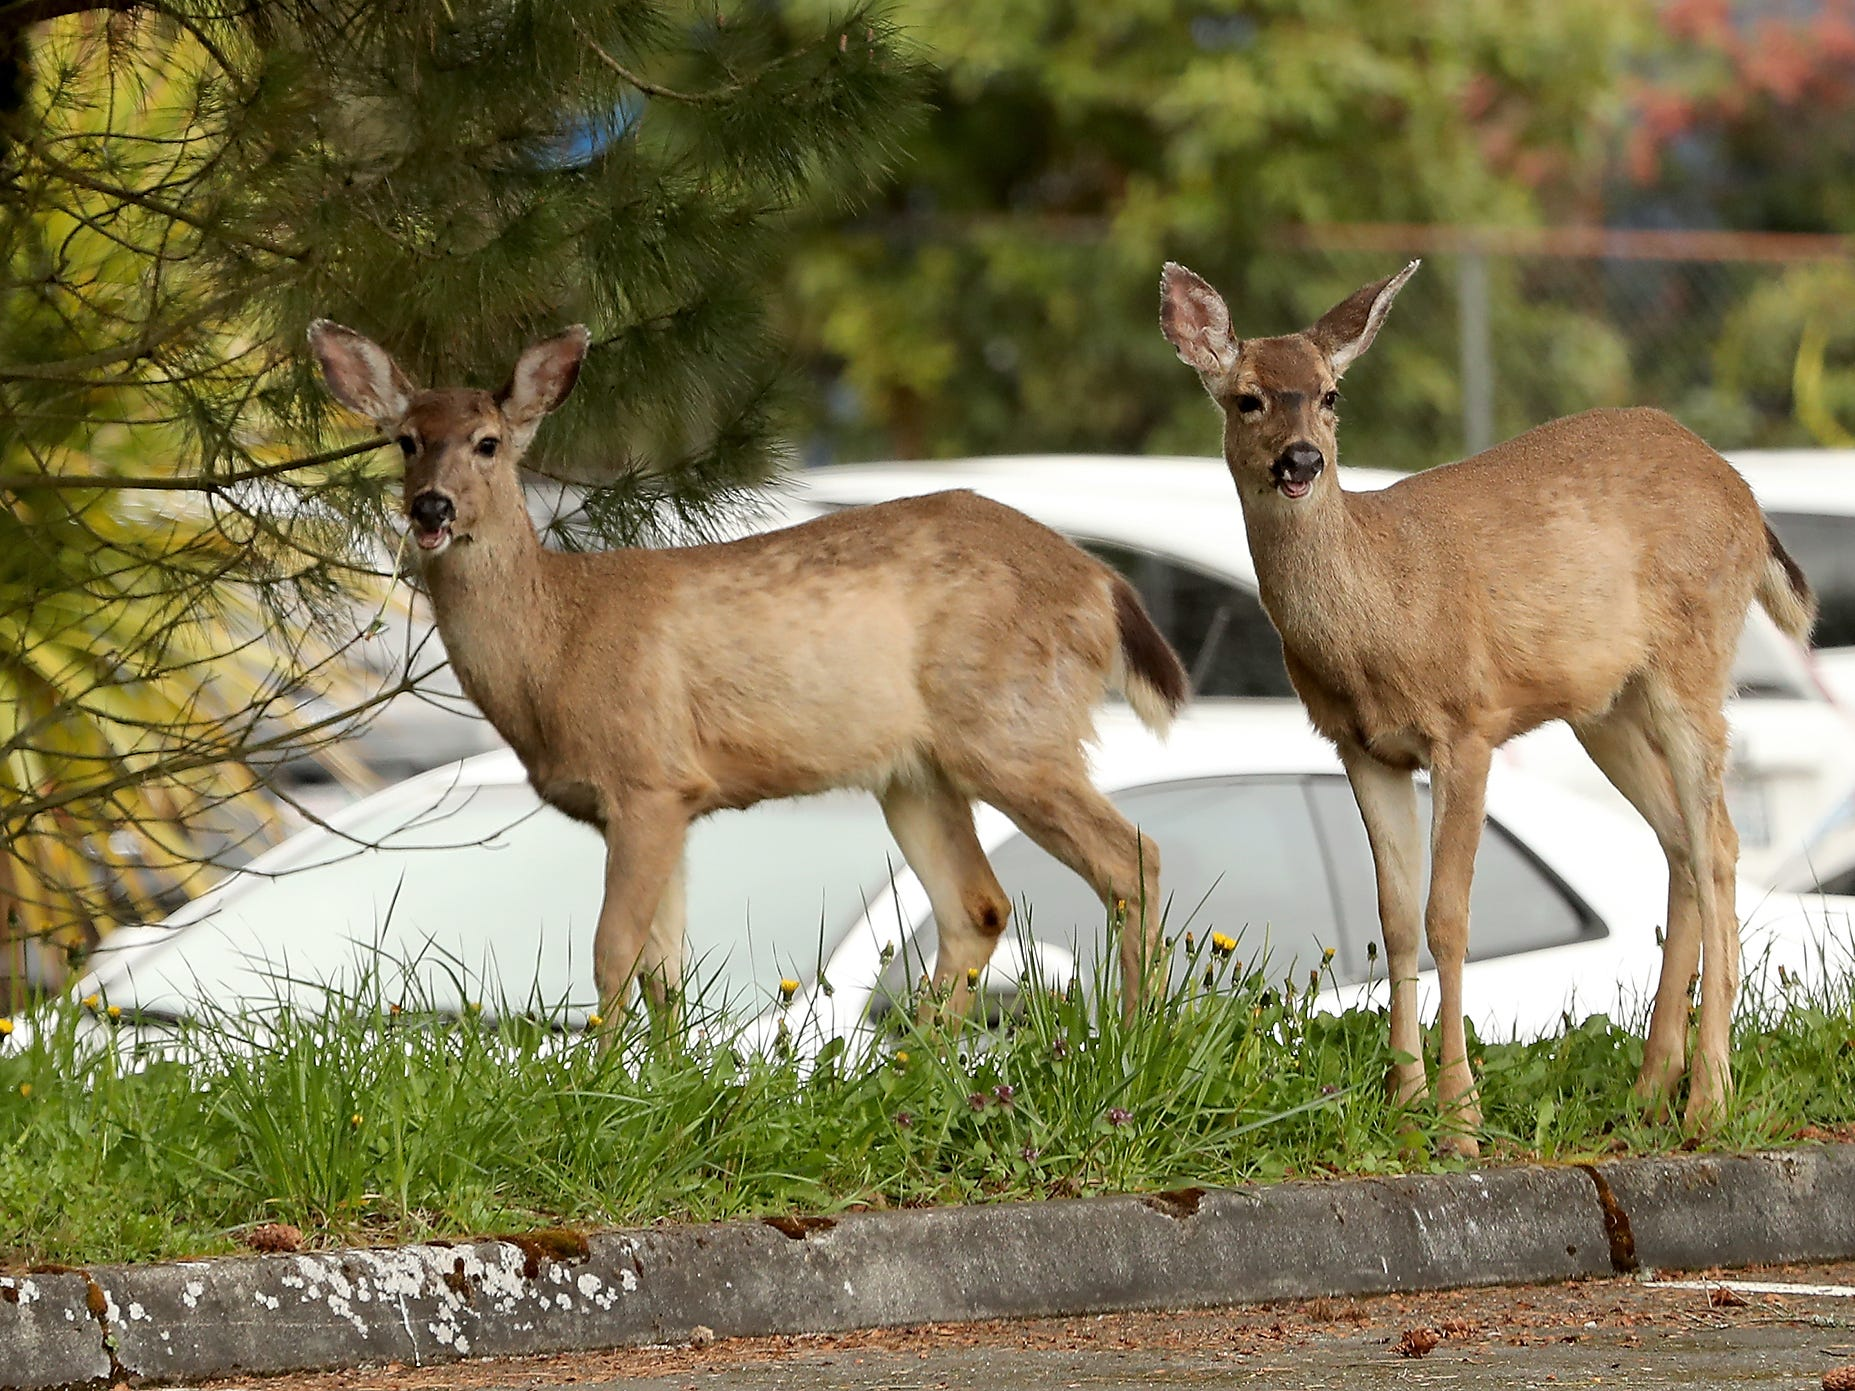 A pair of deer graze along the parking lot of Sylvan Way Baptist Church in Bremerton on Tuesday, April 16, 2019.